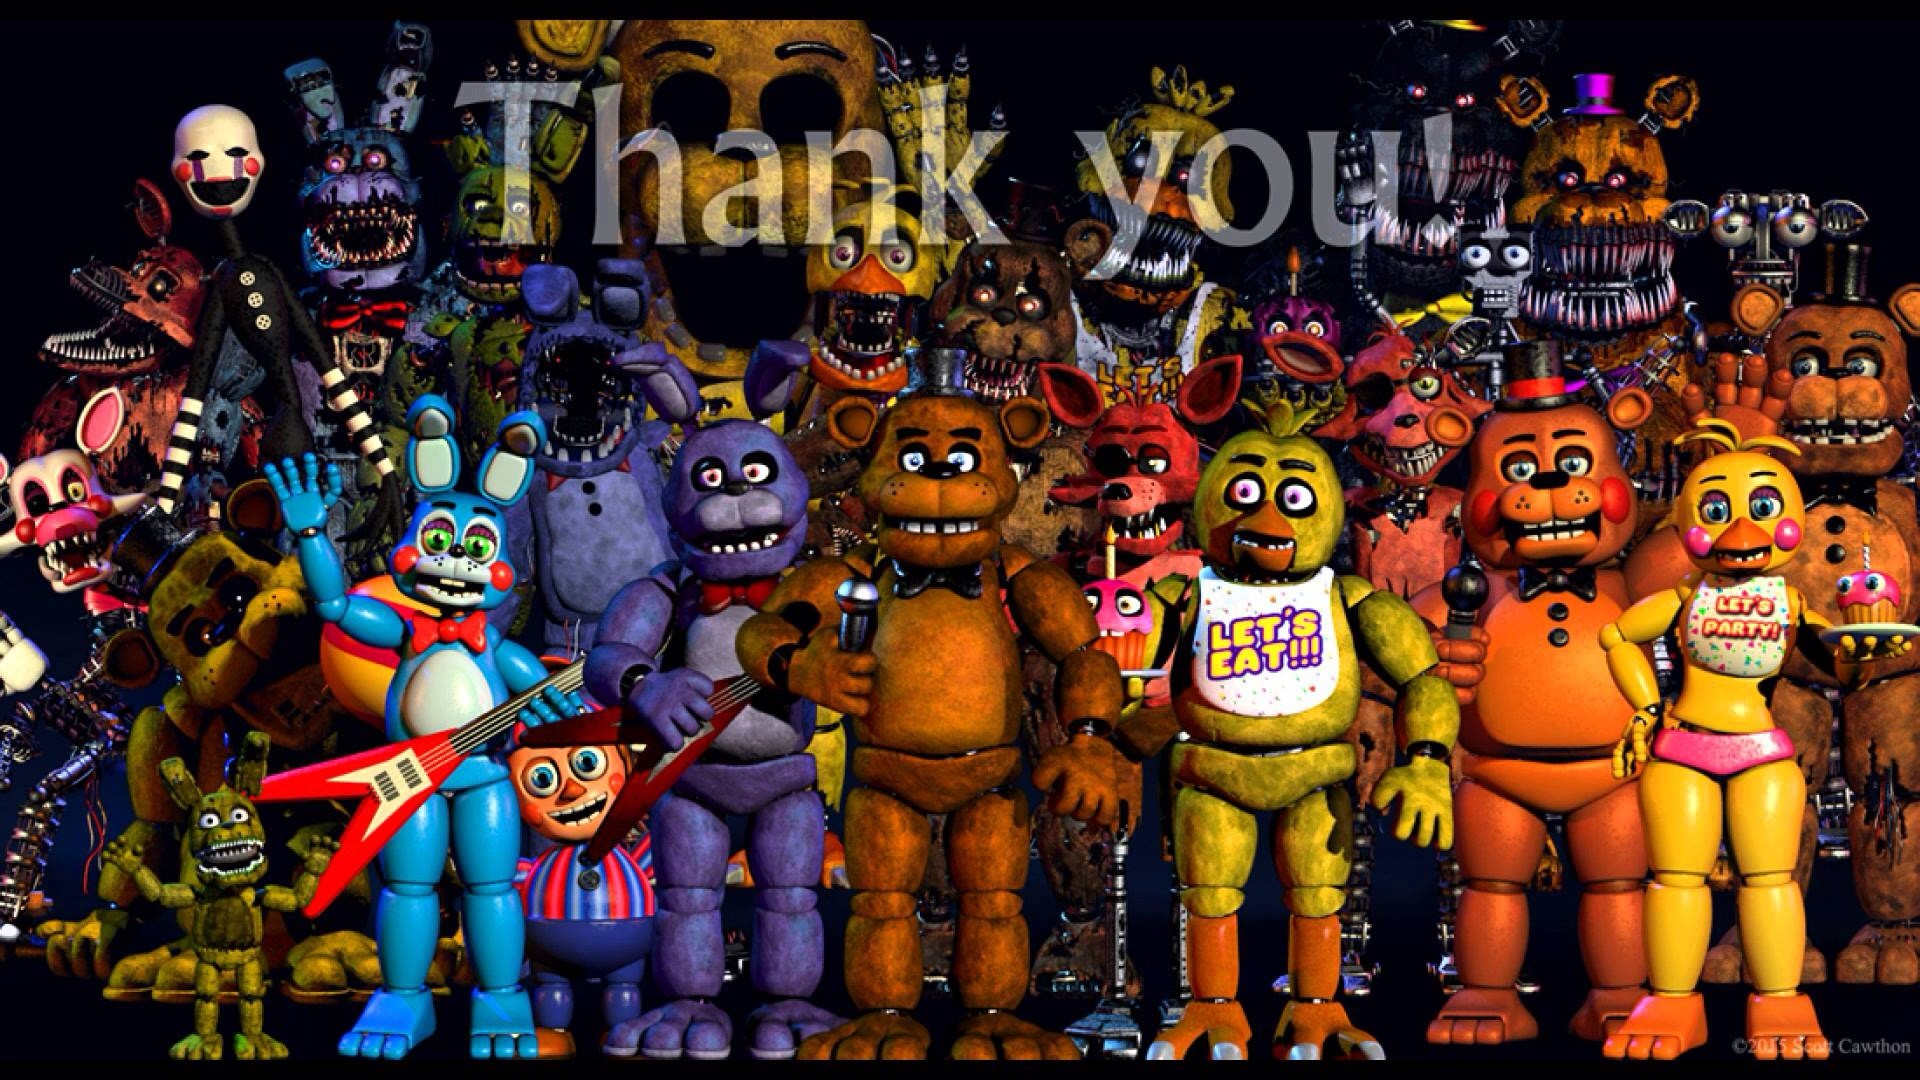 """In early August, Scott put up a """"Thank you!"""" Image on his website."""